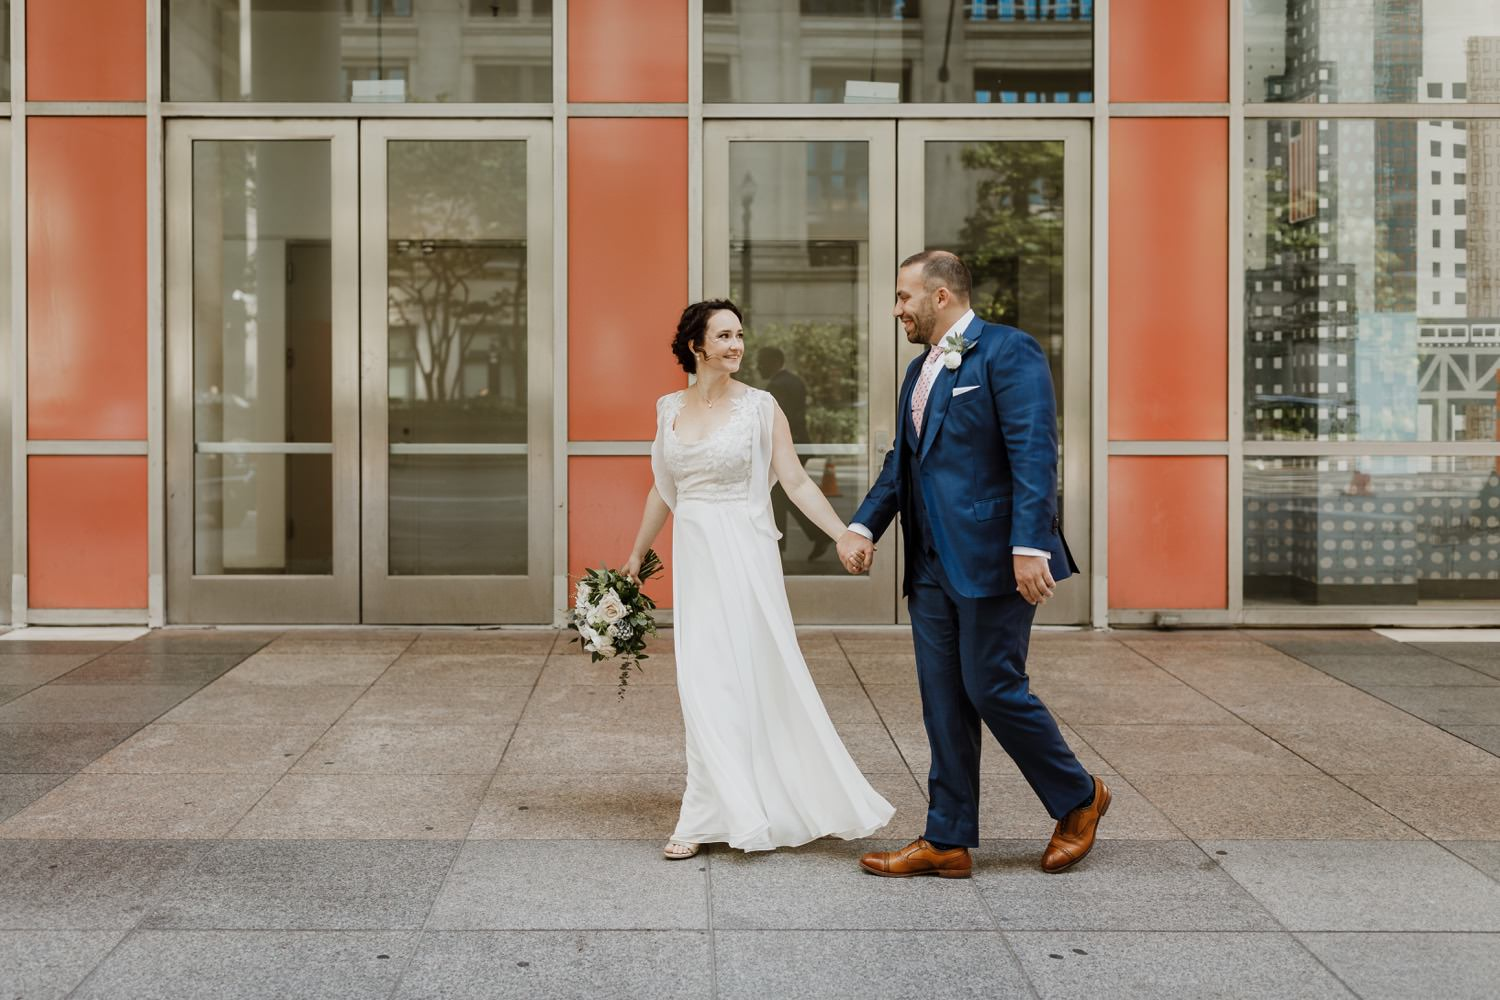 Bride and groom walk on the street of downtown Chicago during their fall wedding day